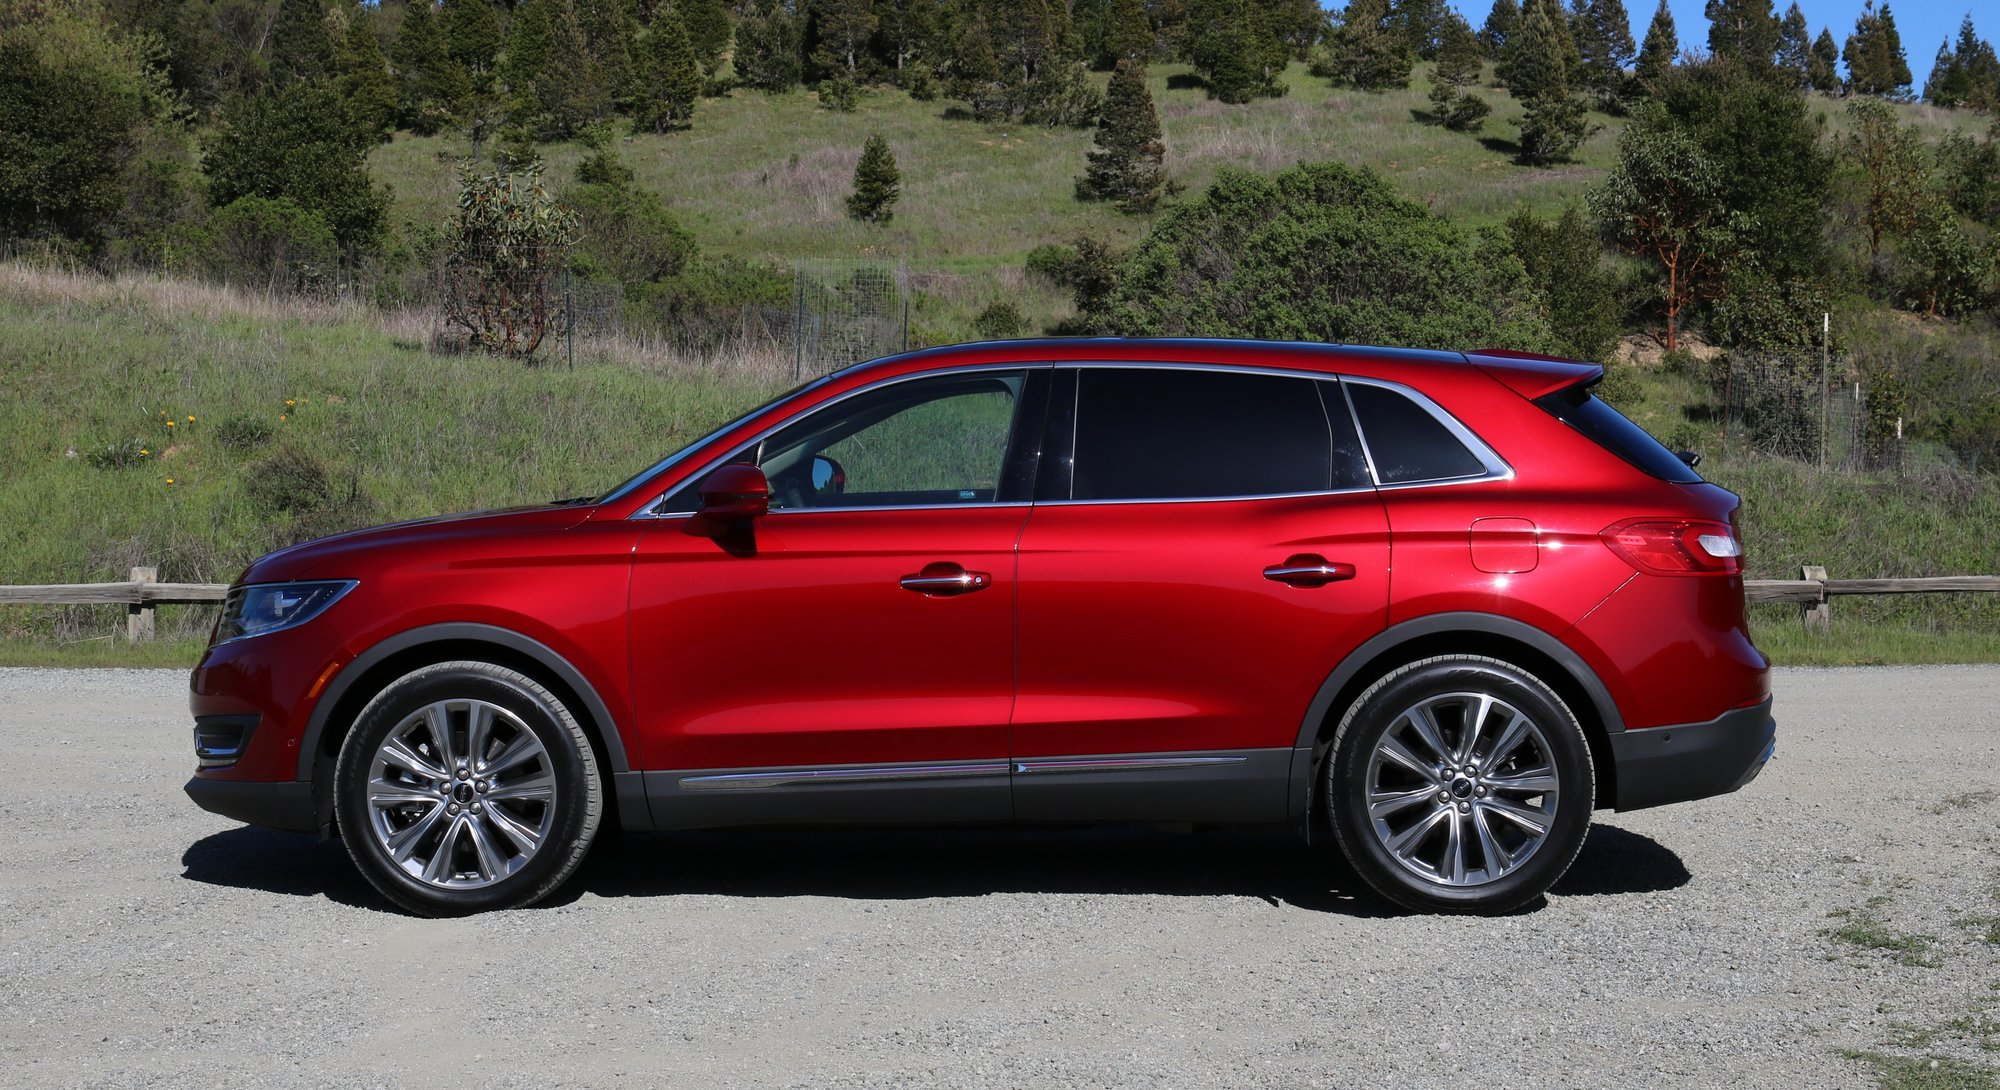 http://www.thetruthaboutcars.com/wp-content/uploads/2016/04/2016-Lincoln-MKX-EcoBoost-Exterior-002.jpg